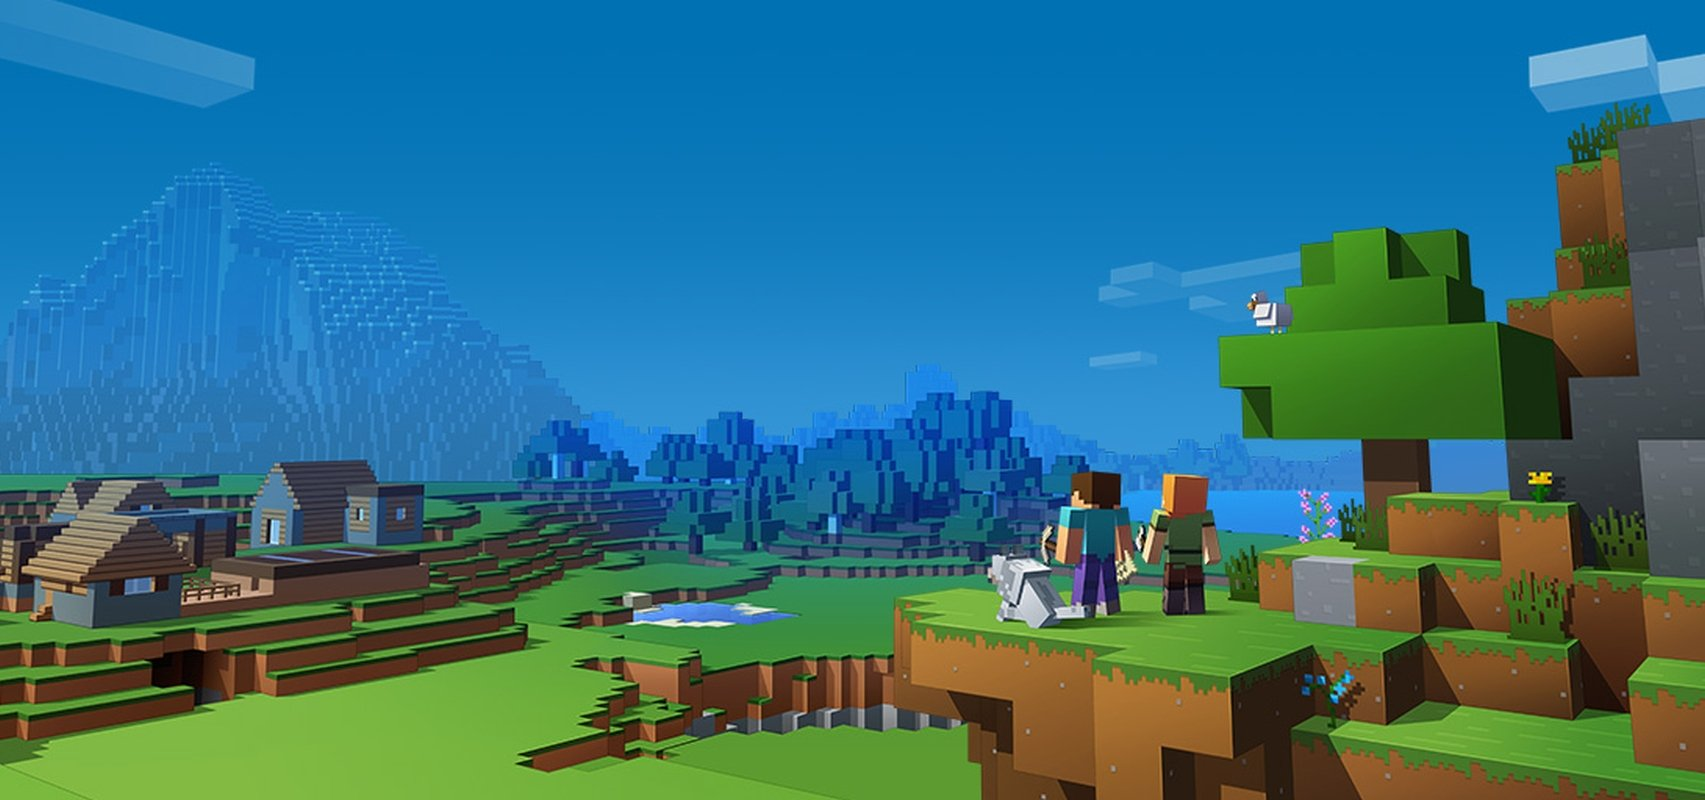 Minecraft Bedrock Edition Update 1.16.100.52 Beta Focuses on Bugs Introduced By The Nether Update